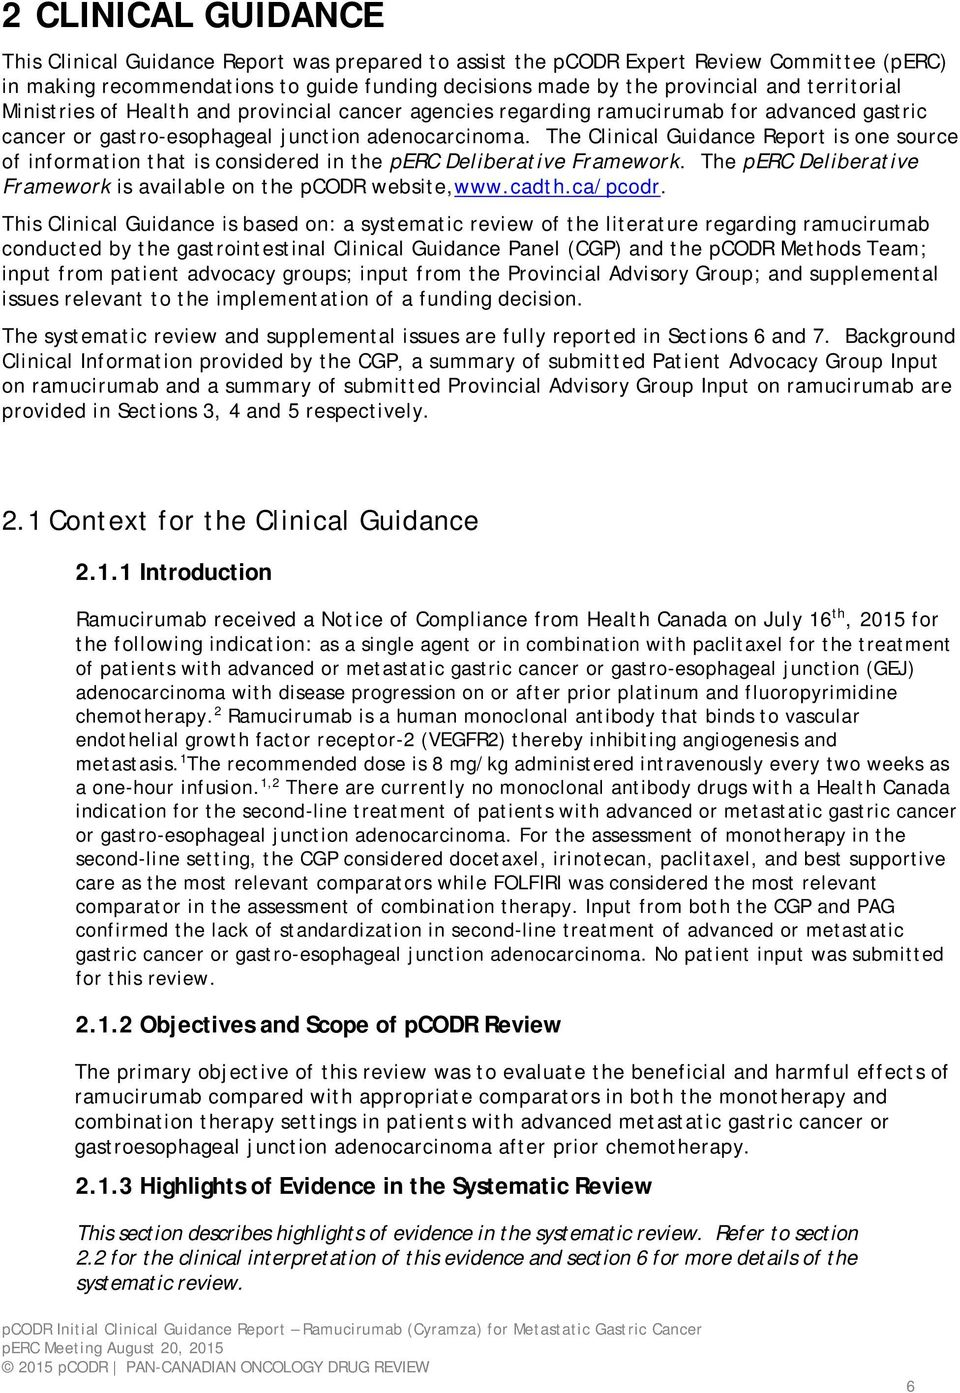 The Clinical Guidance Report is one source of information that is considered in the perc Deliberative Framework. The perc Deliberative Framework is available on the pcodr website,www.cadth.ca/pcodr.